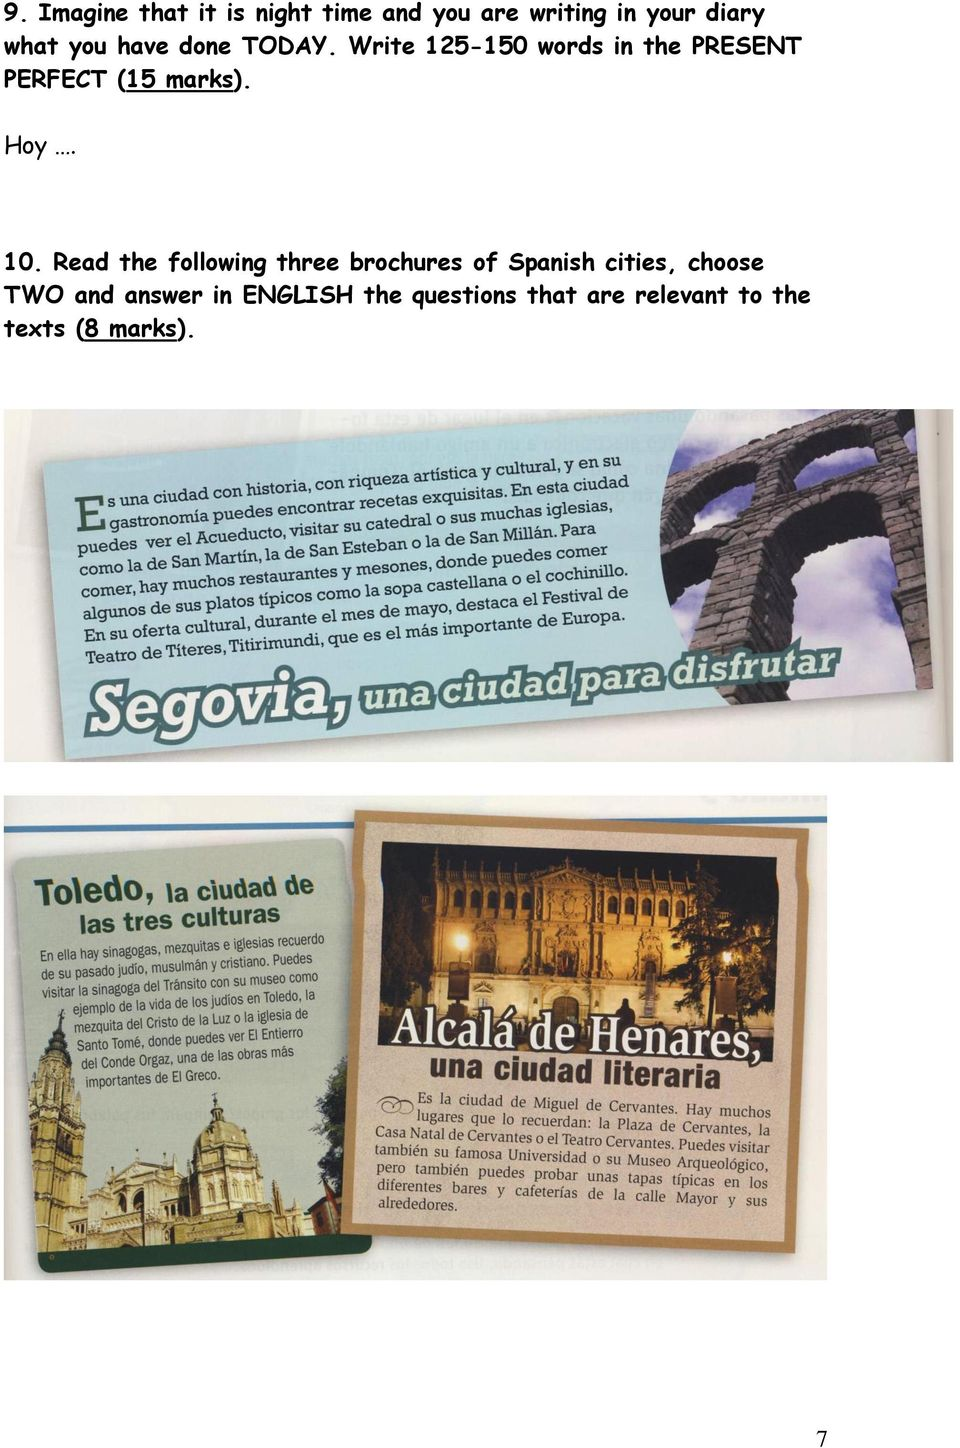 10. Read the following three brochures of Spanish cities, choose TWO and